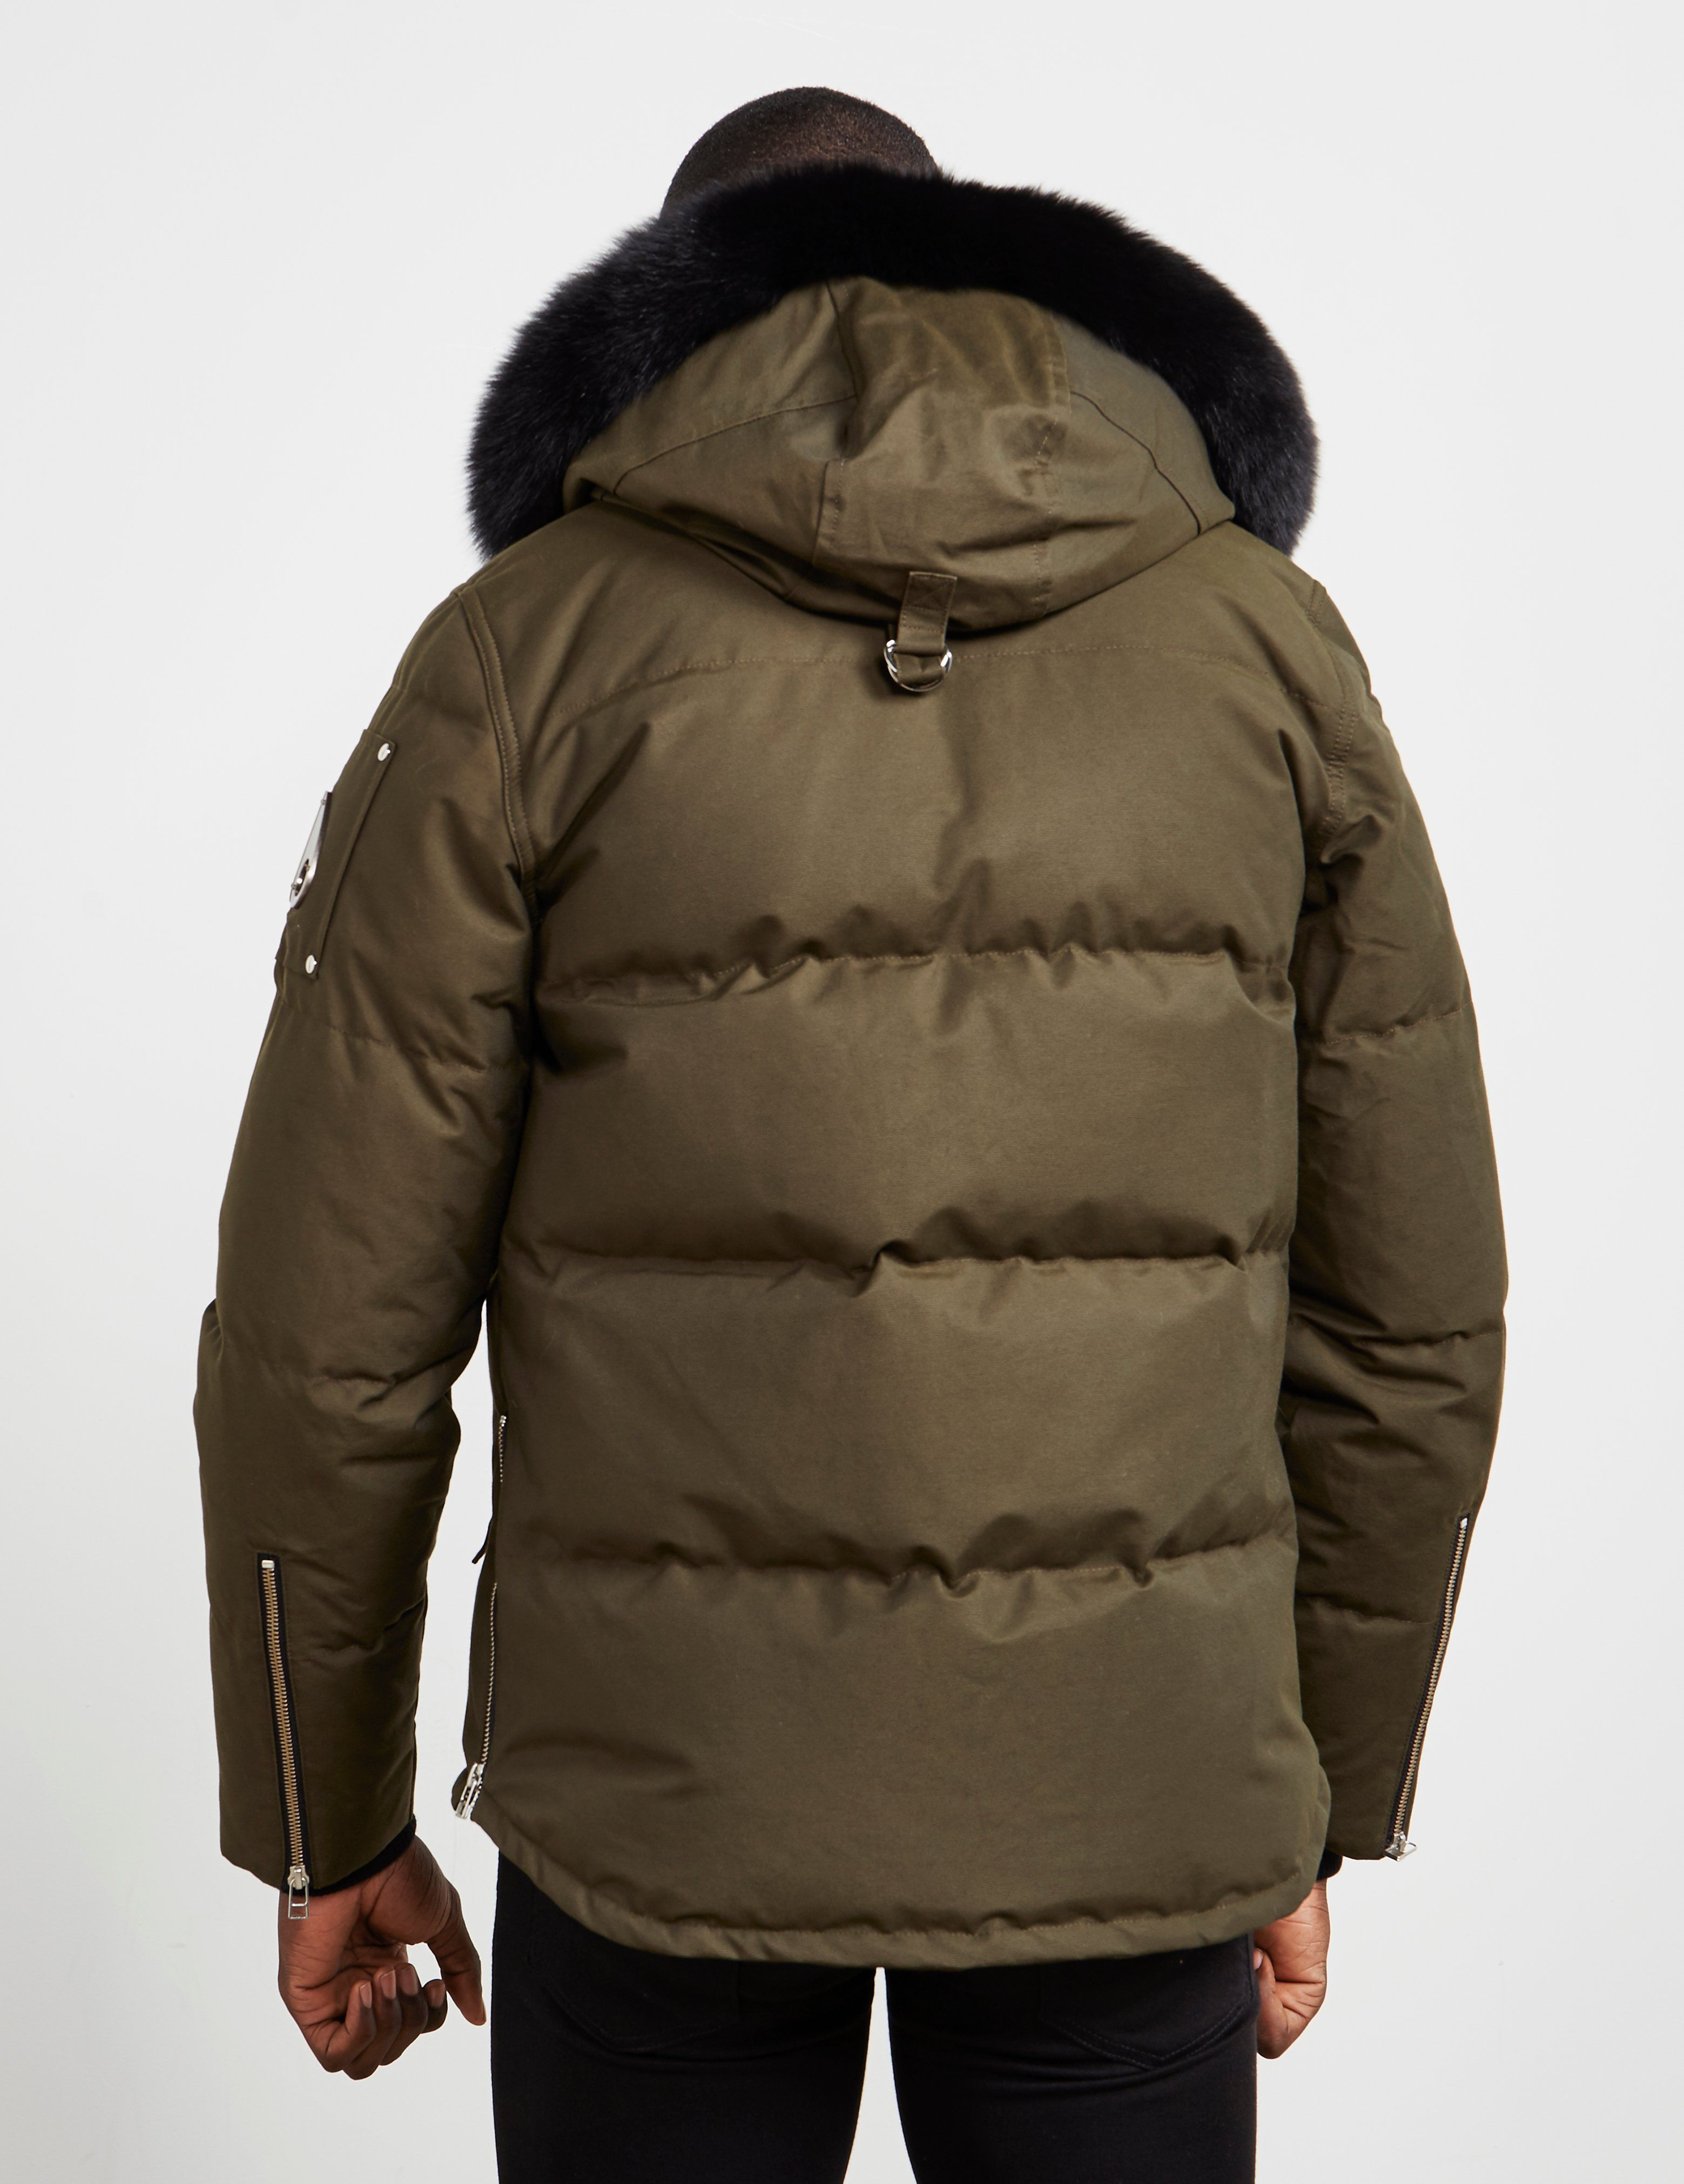 Moose Knuckles 3Q Parka Jacket